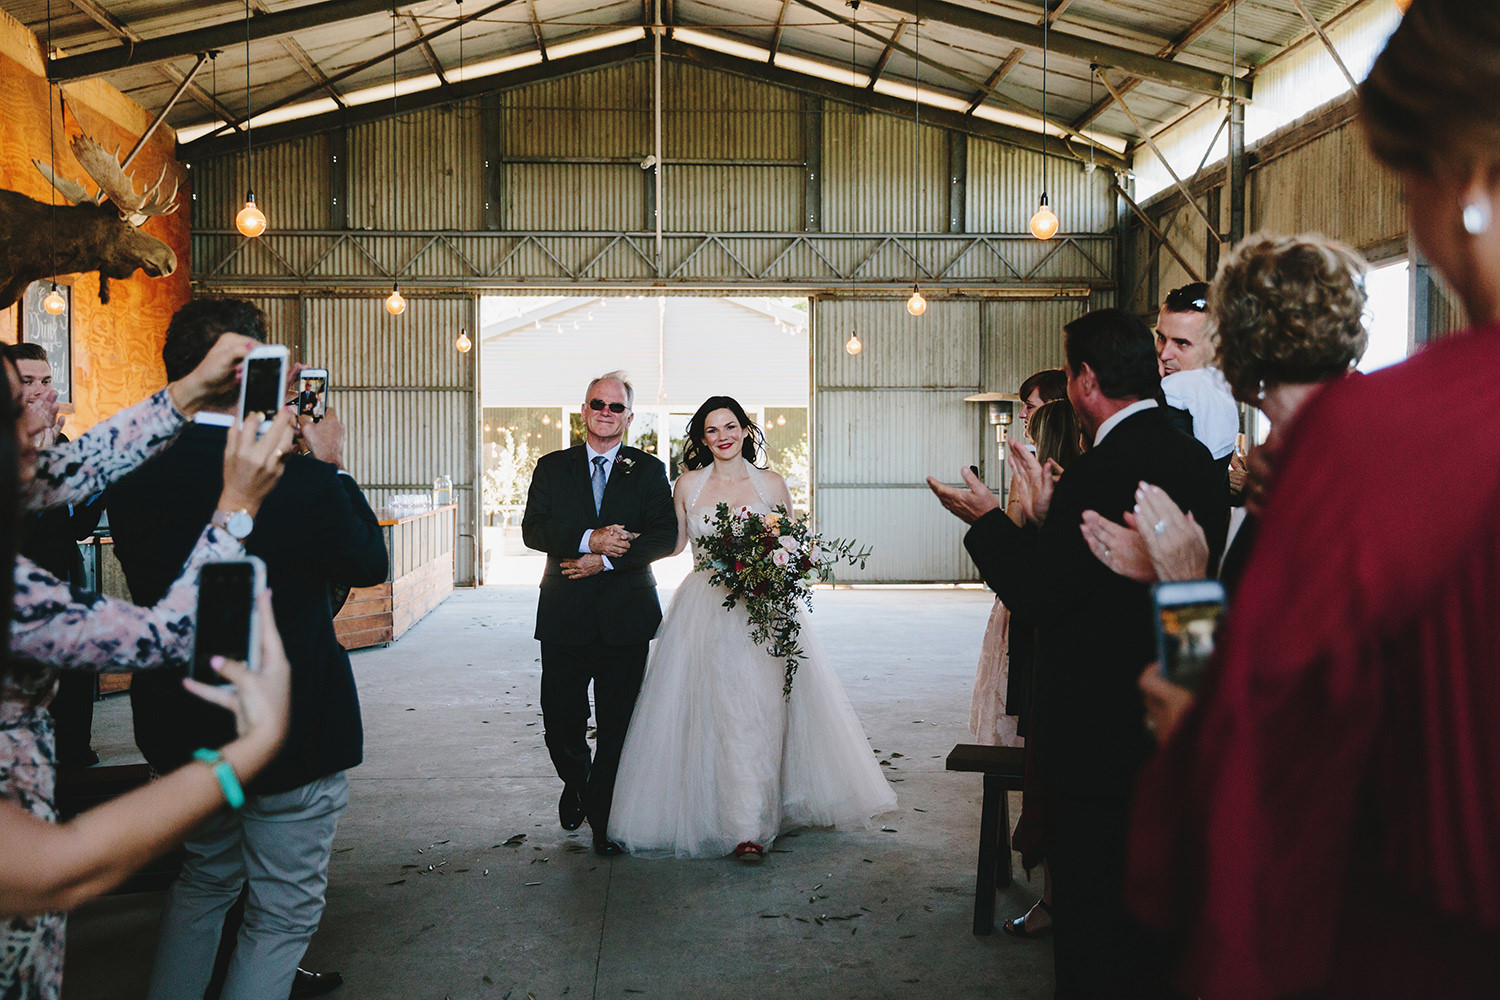 Melbourne_Winery_Wedding_Chris_Merrily084.JPG